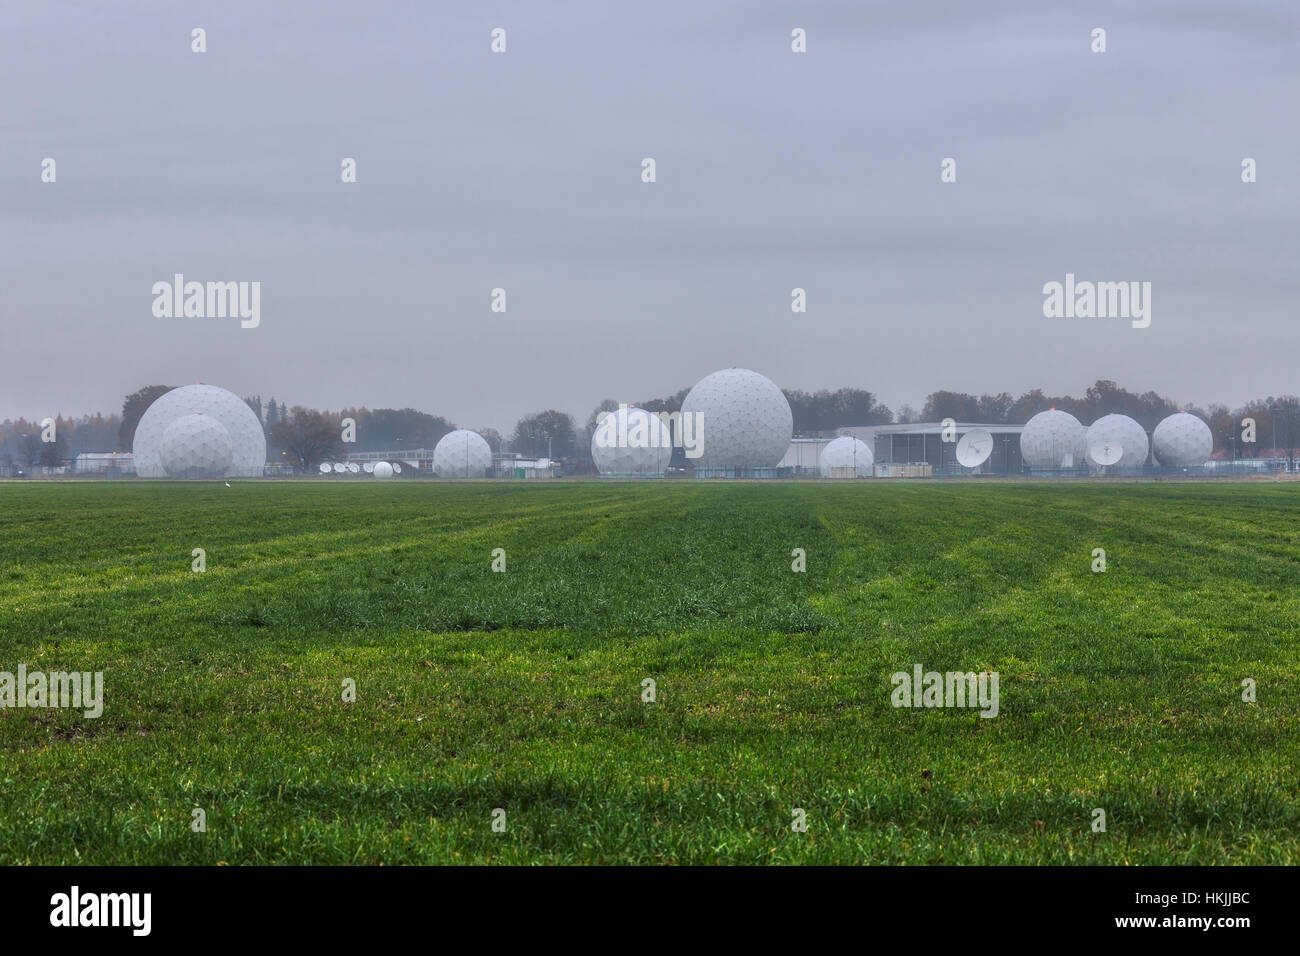 Radar Dome against cloudy sky at Bad Aibling Station, Bavaria, Germany - Stock Image